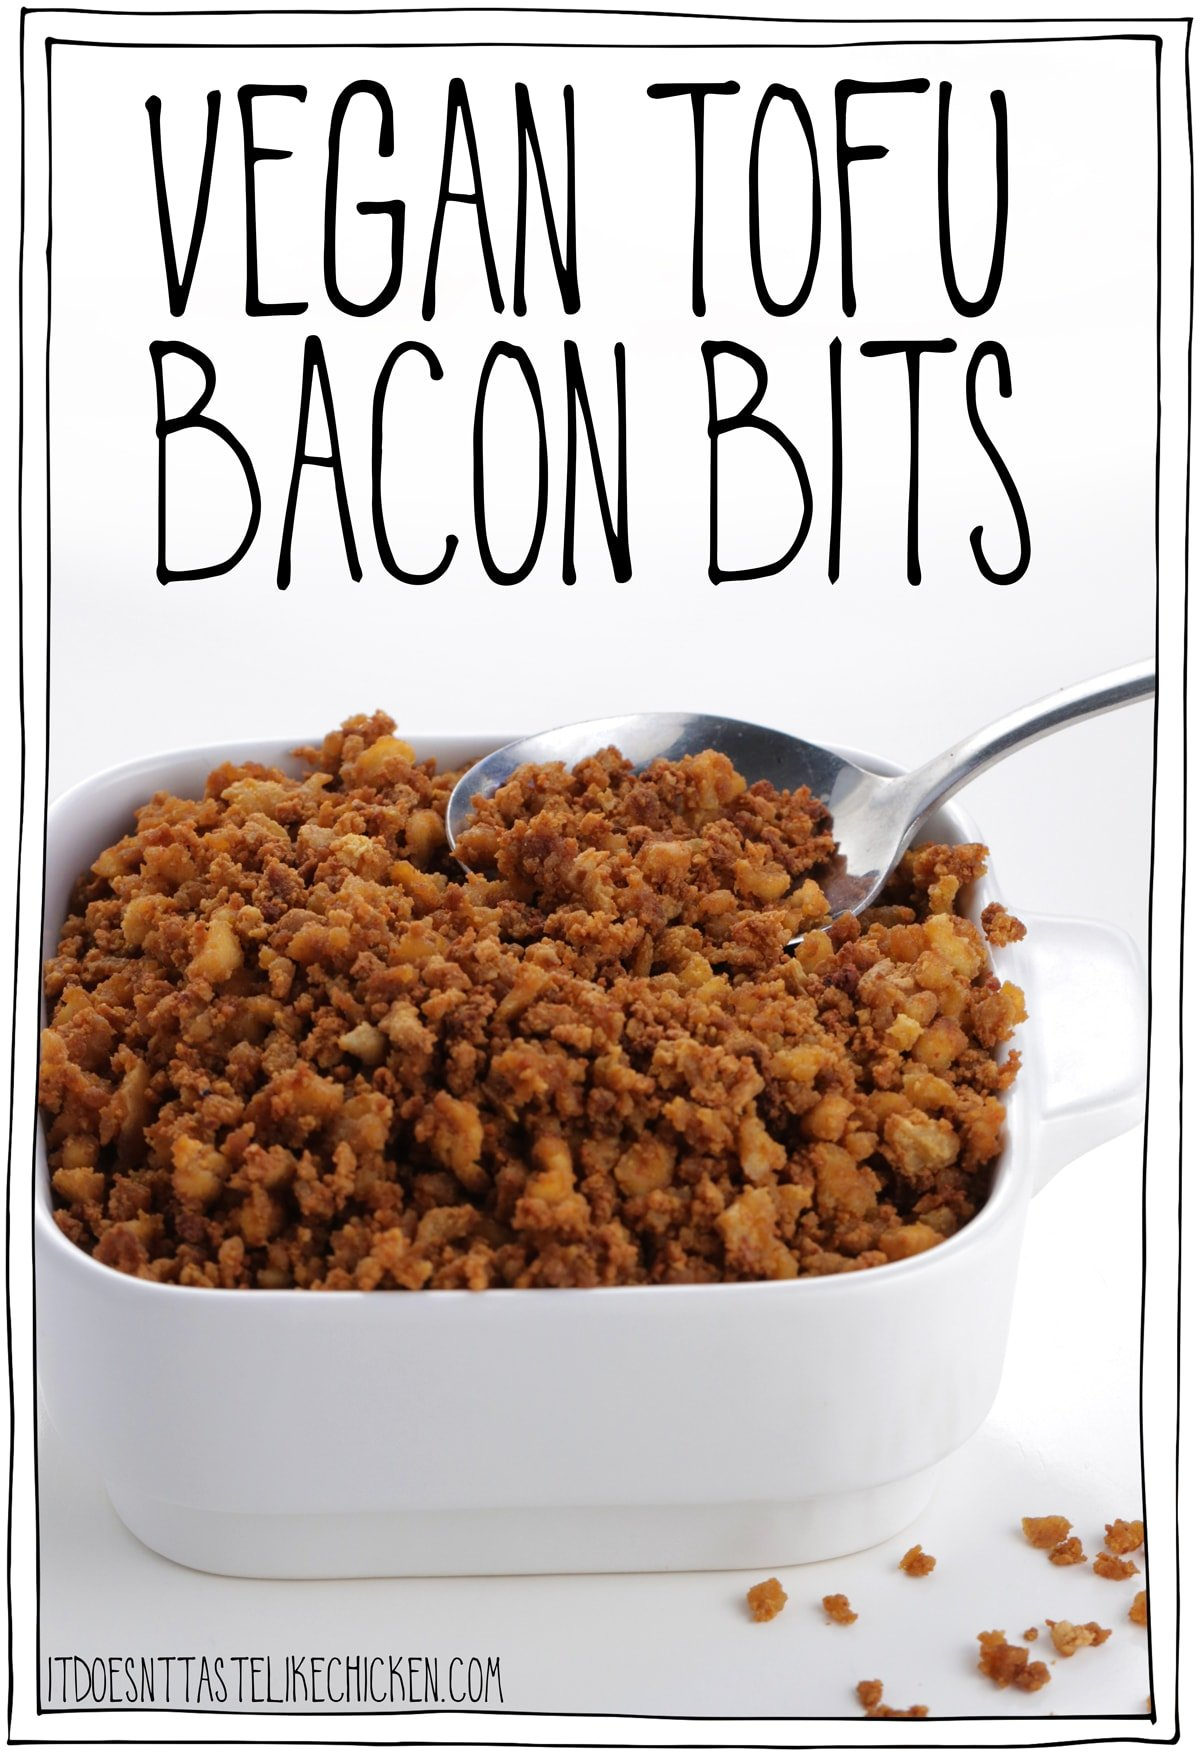 Vegan Tofu Bacon Bits! Easy to make with just 7 ingredients, oil-free, gluten-free, and are actually HEALTHY! Healthy bacon? I like the sounds of that! Sprinkle them on salad, soup, pizza, pasta, anywhere you like! #itdoesnttastelikechicken #veganrecipes #veganbacon